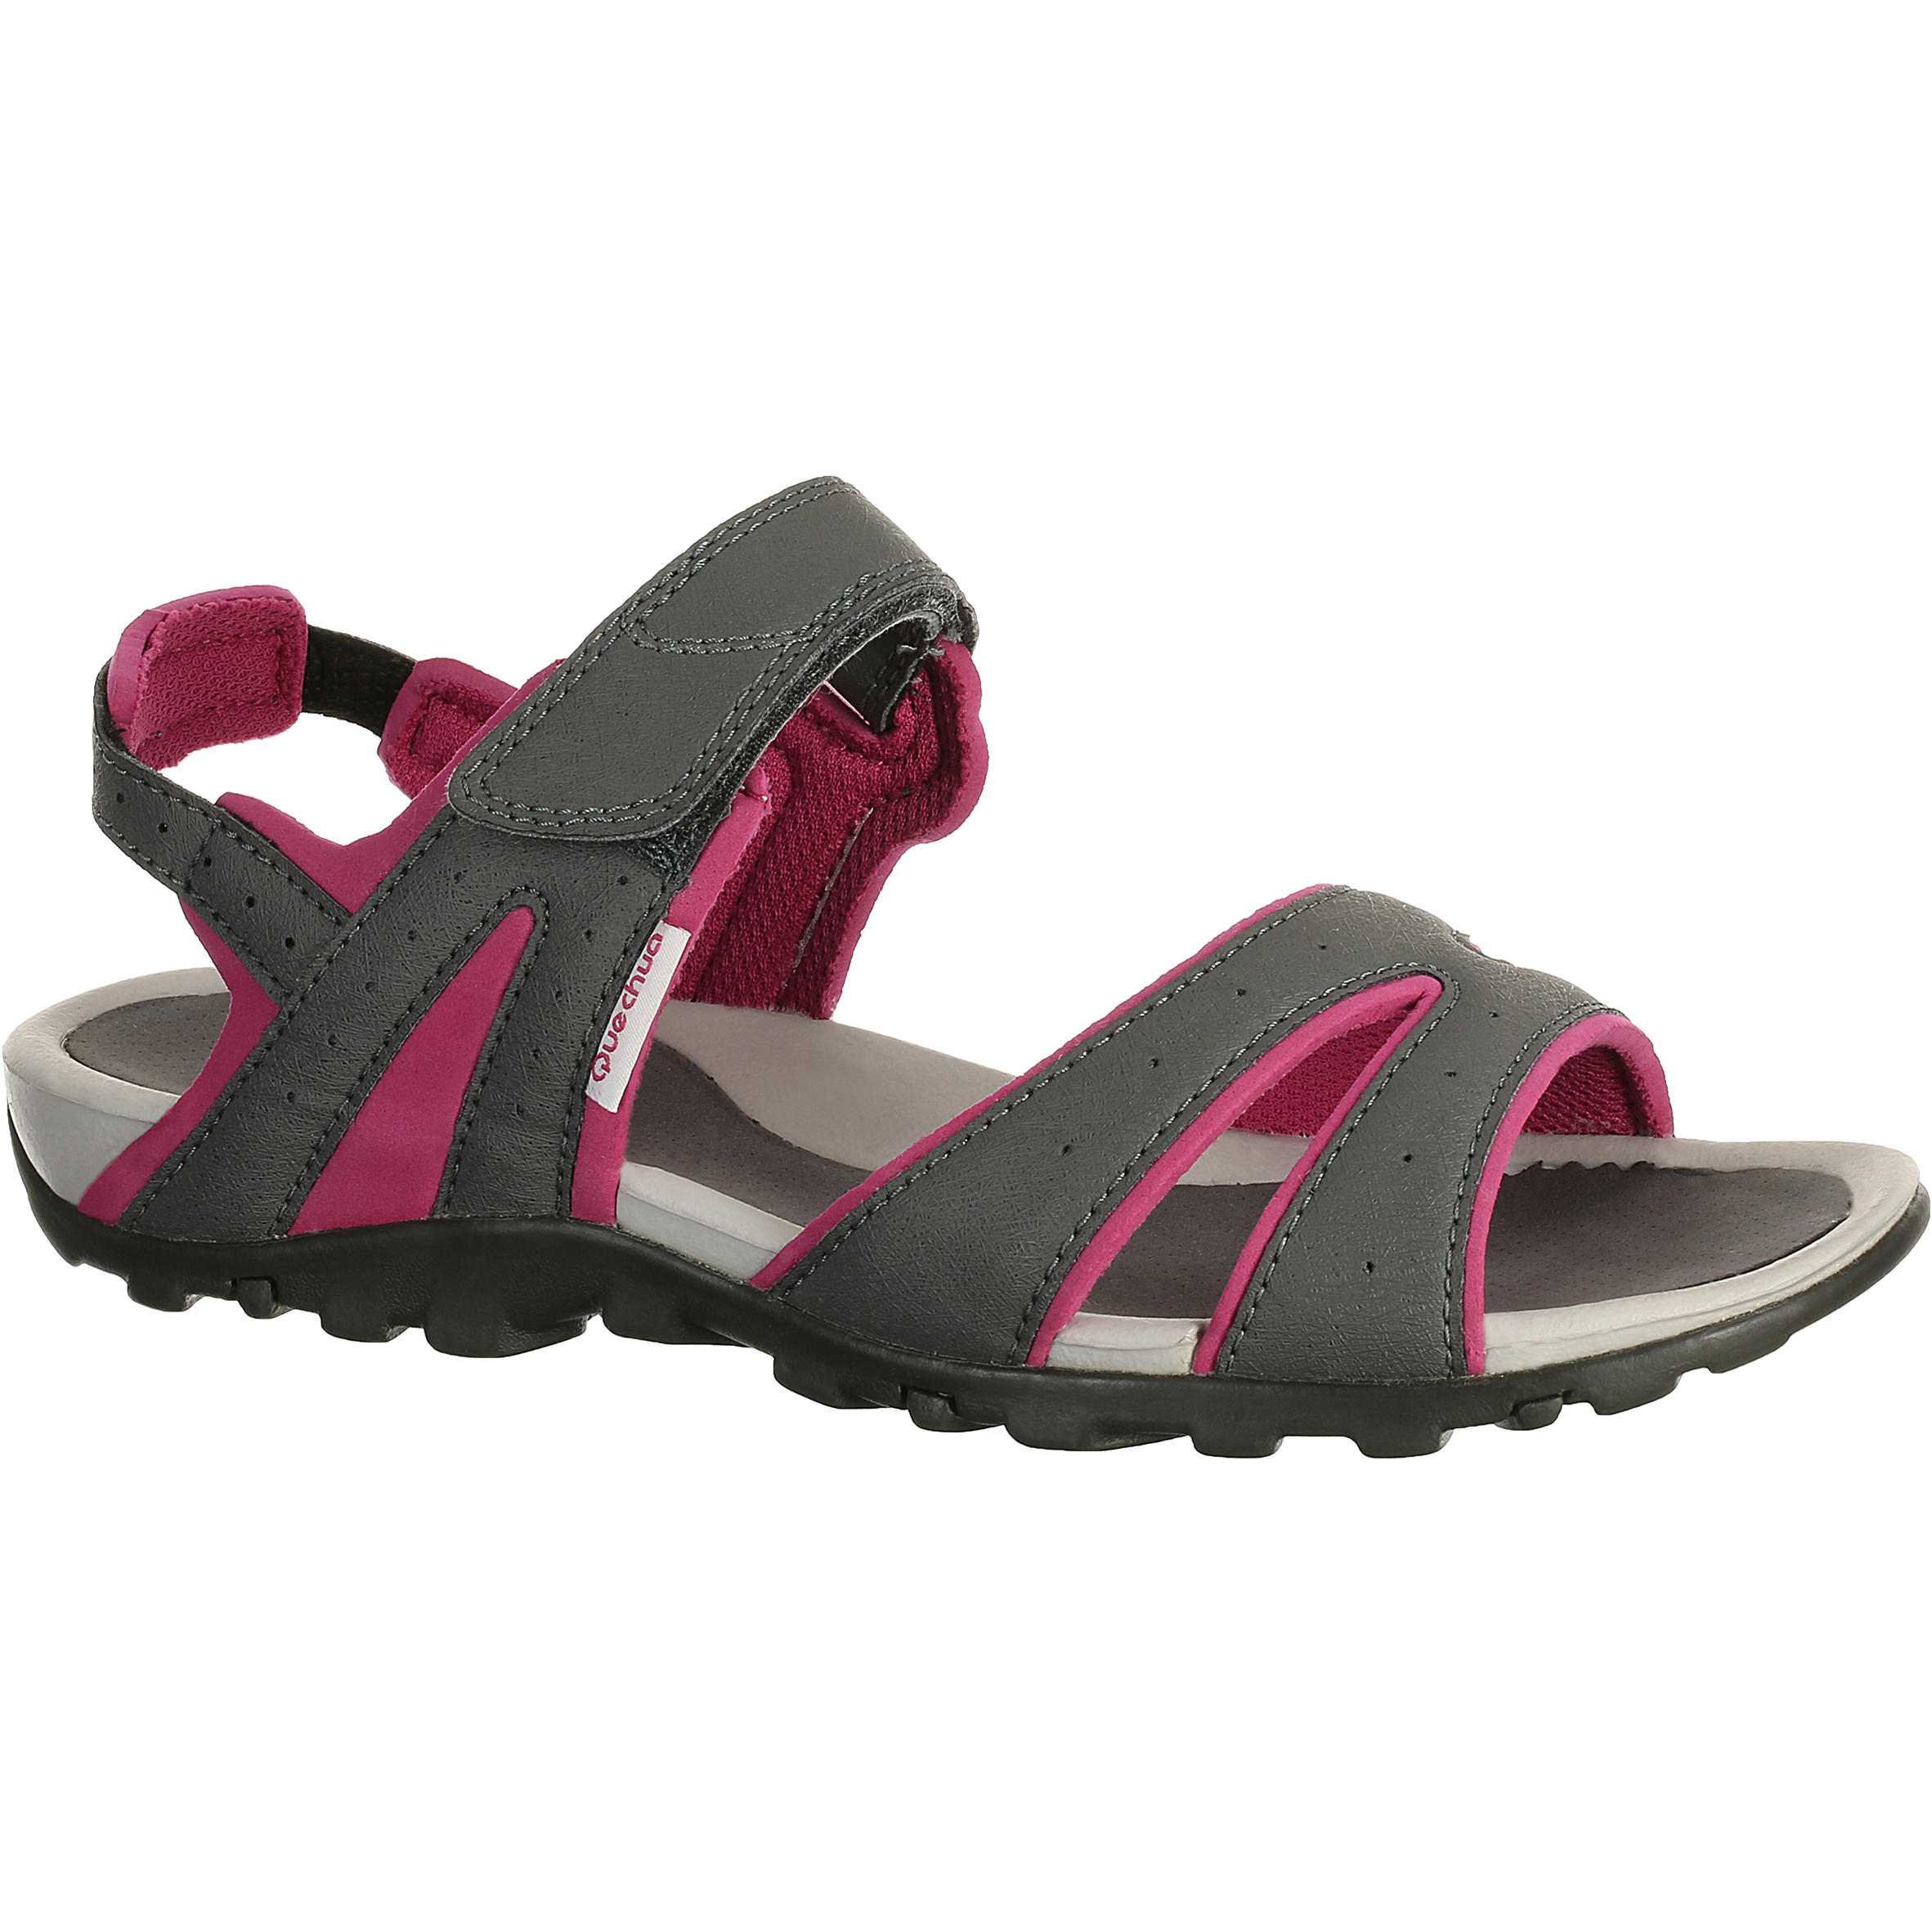 Women's Hiking Arpenaz 50 Sandals - Pink